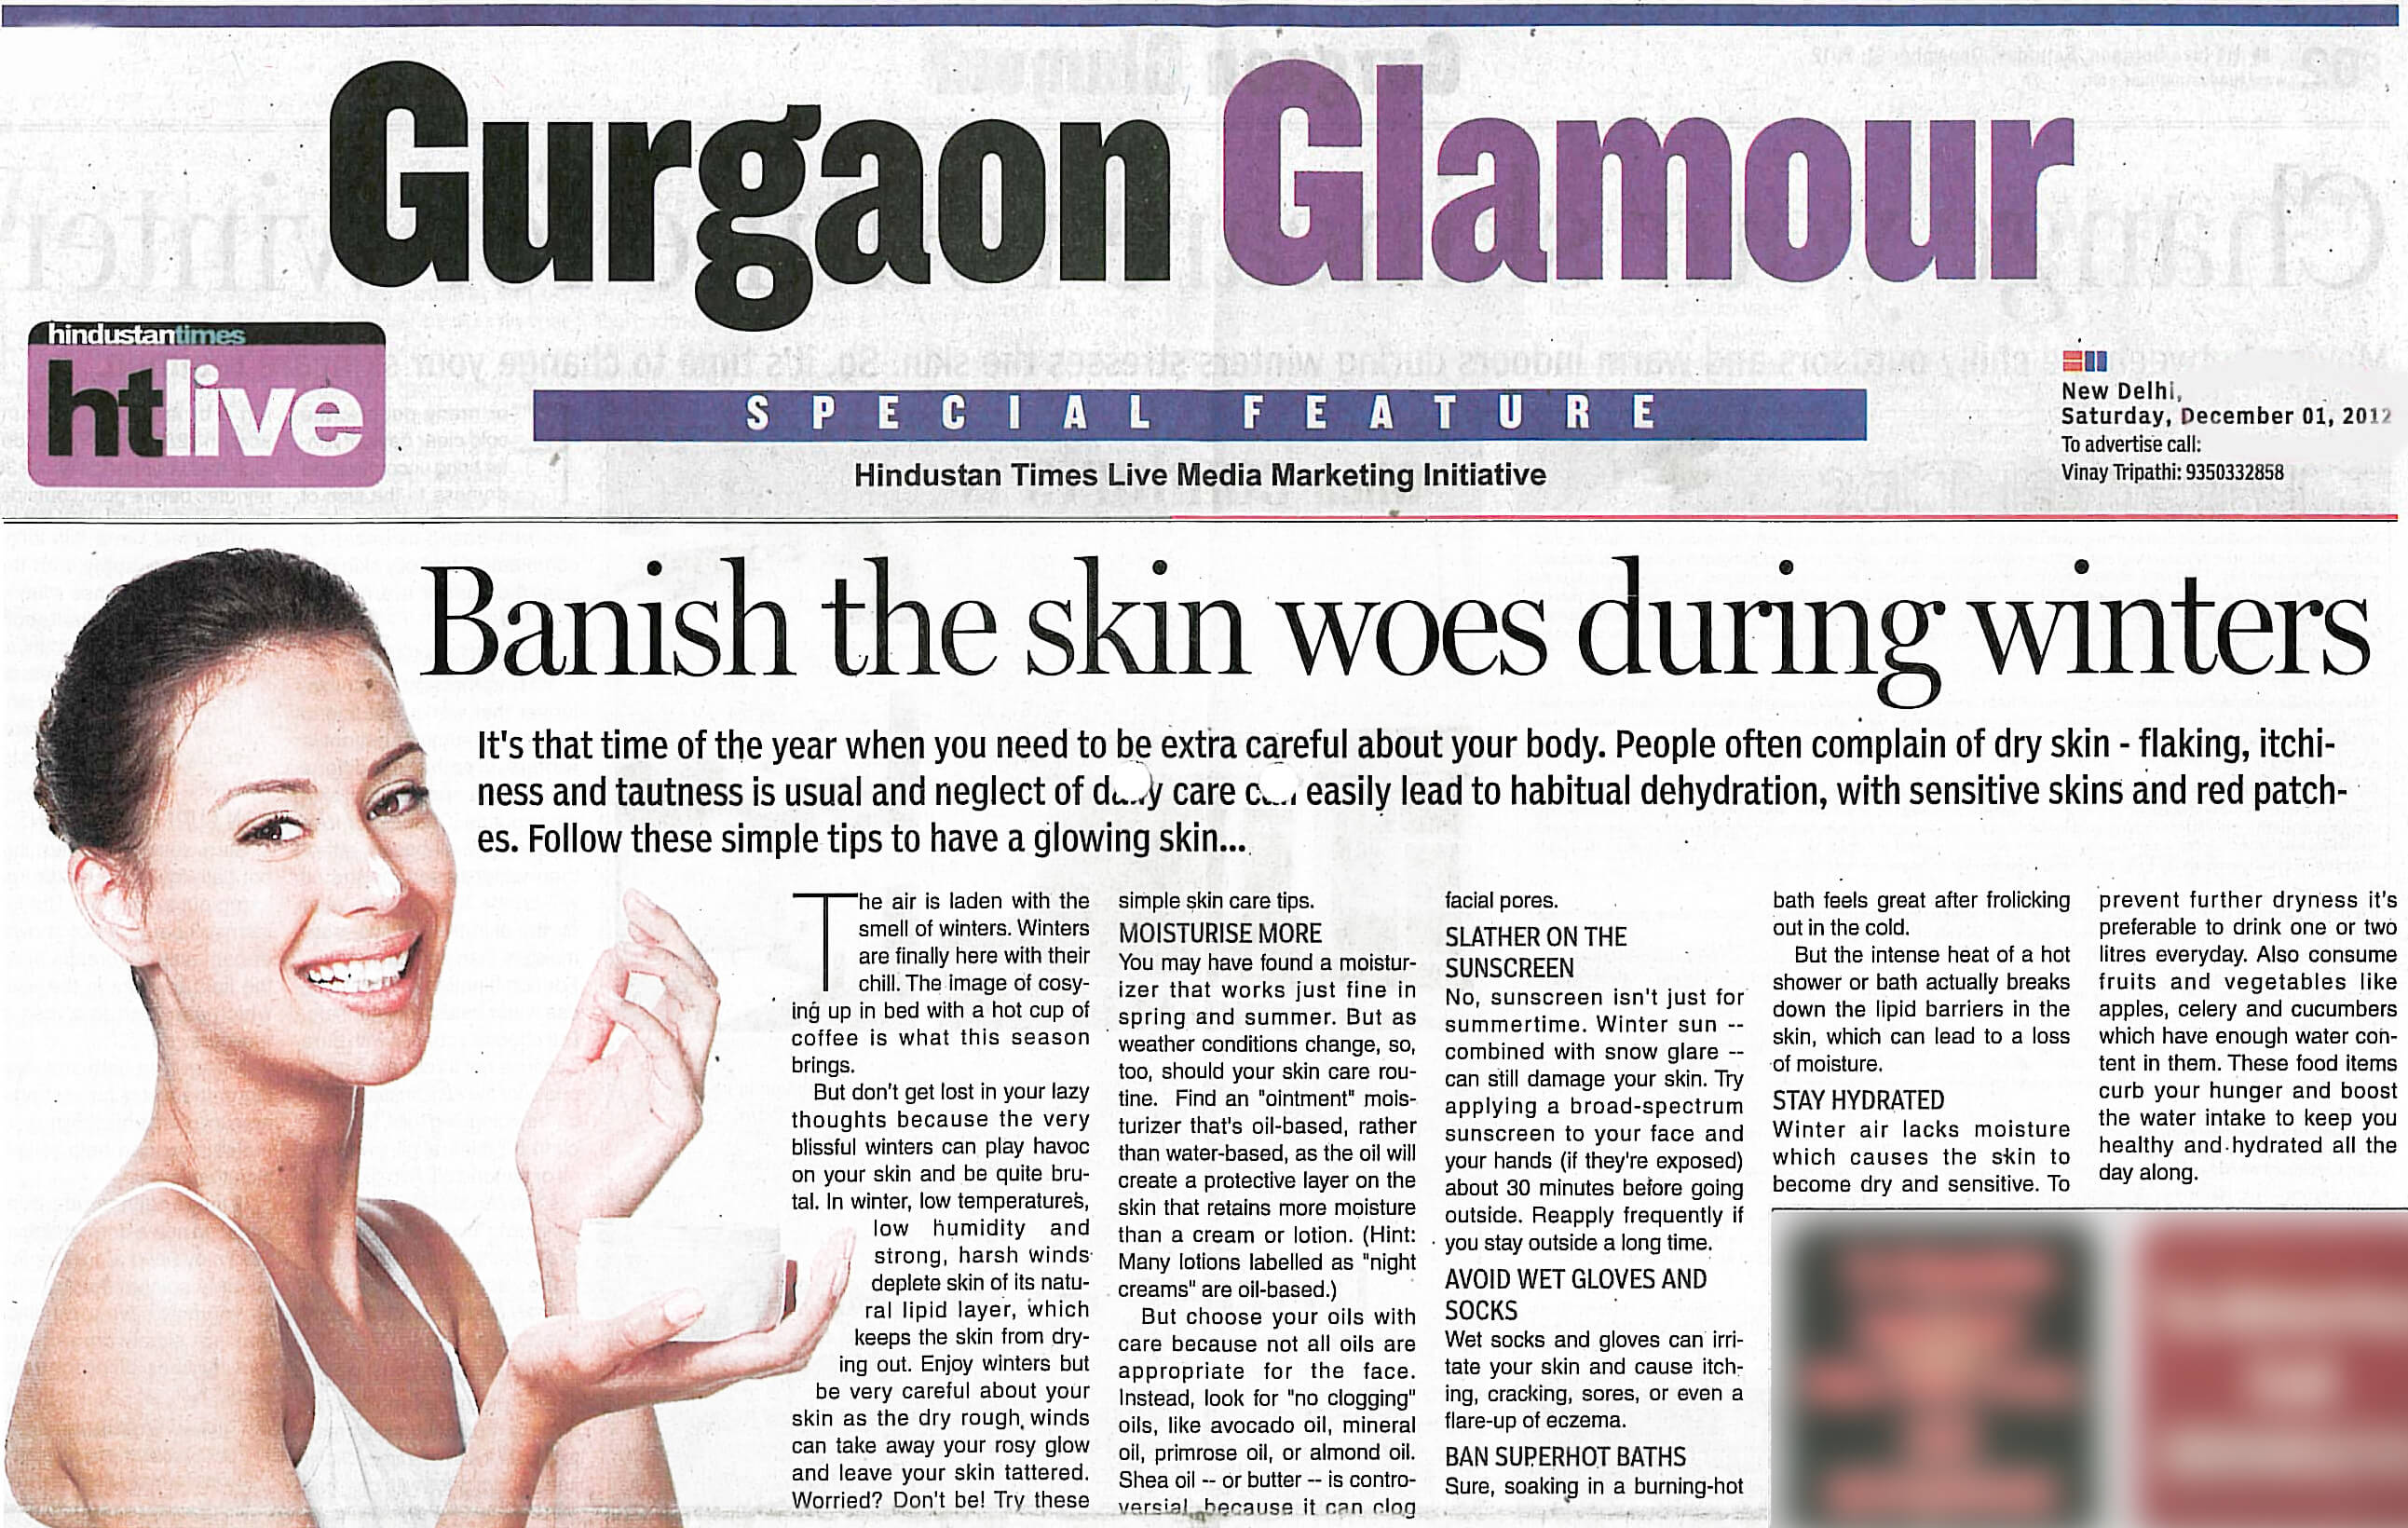 Banish the skin woes during winters